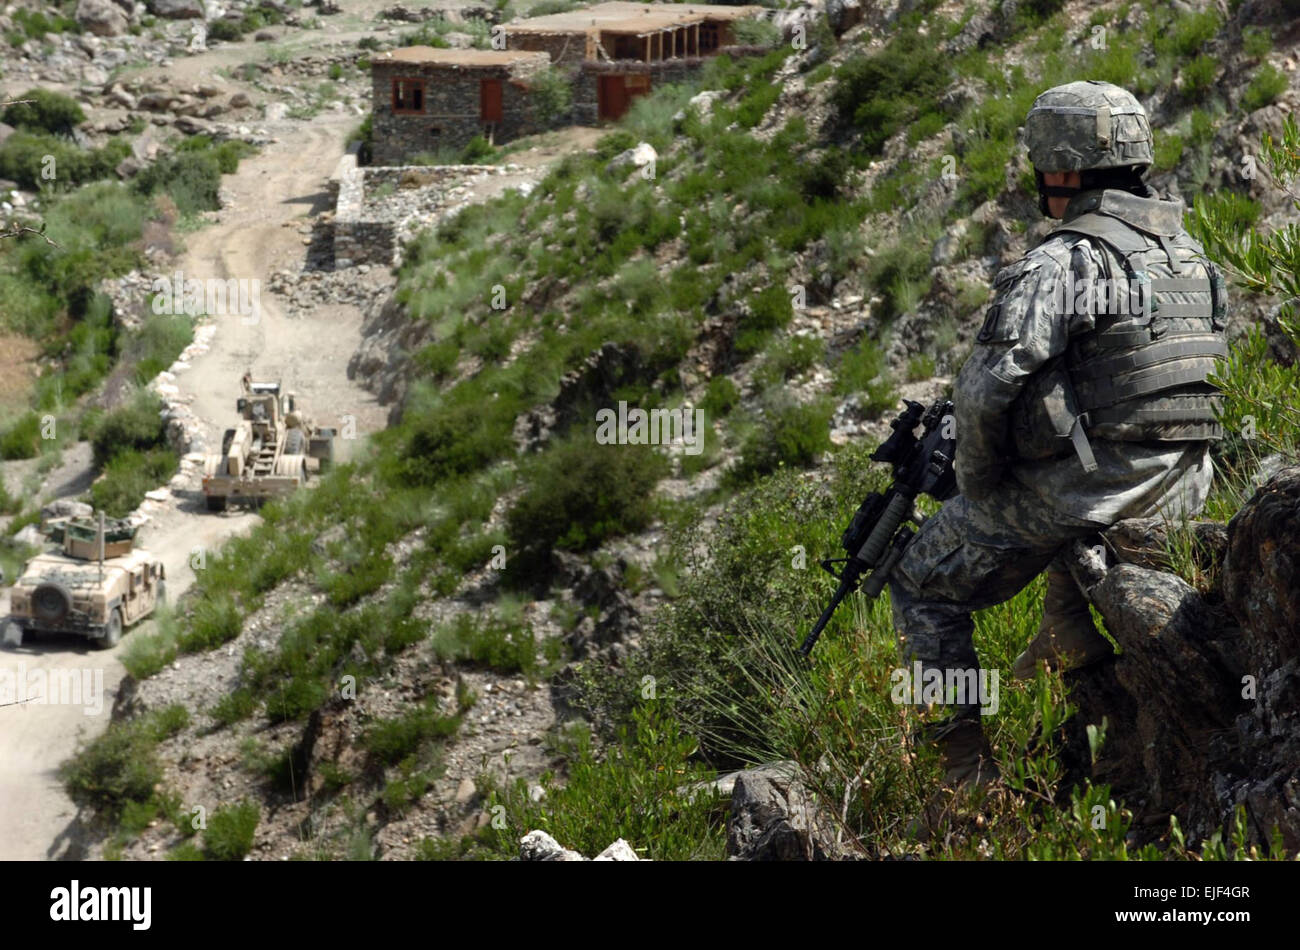 070815-A-6849A-015 – 1st Lt. William Cromie , Alpha Company, Special Troops Battalion, 173rd Airborne Brigade Combat - Stock Image